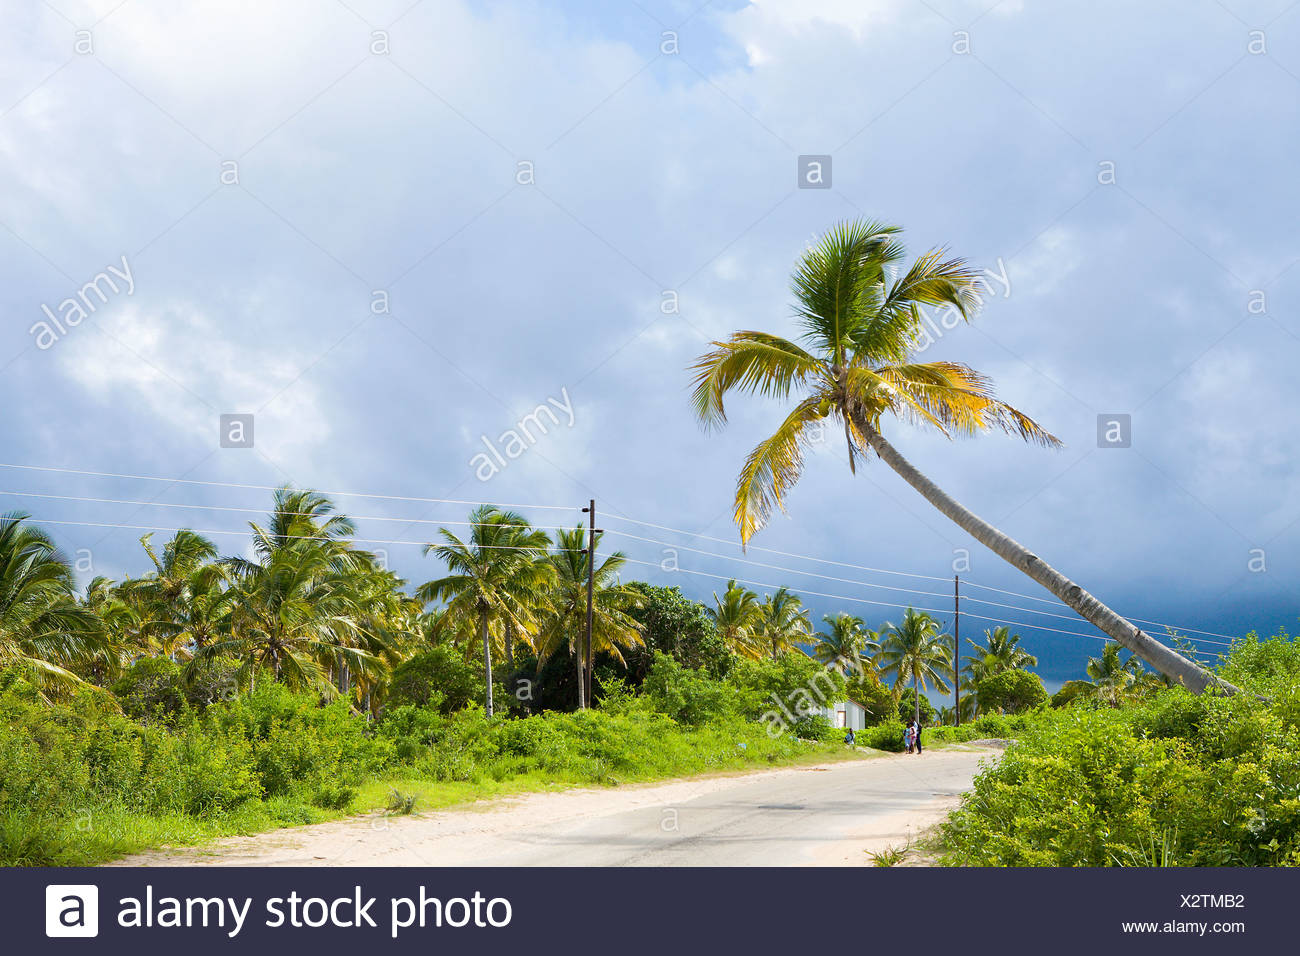 Palm trees along road, Ponta Morrungulo, Inhambane Province, Mozambique - Stock Image